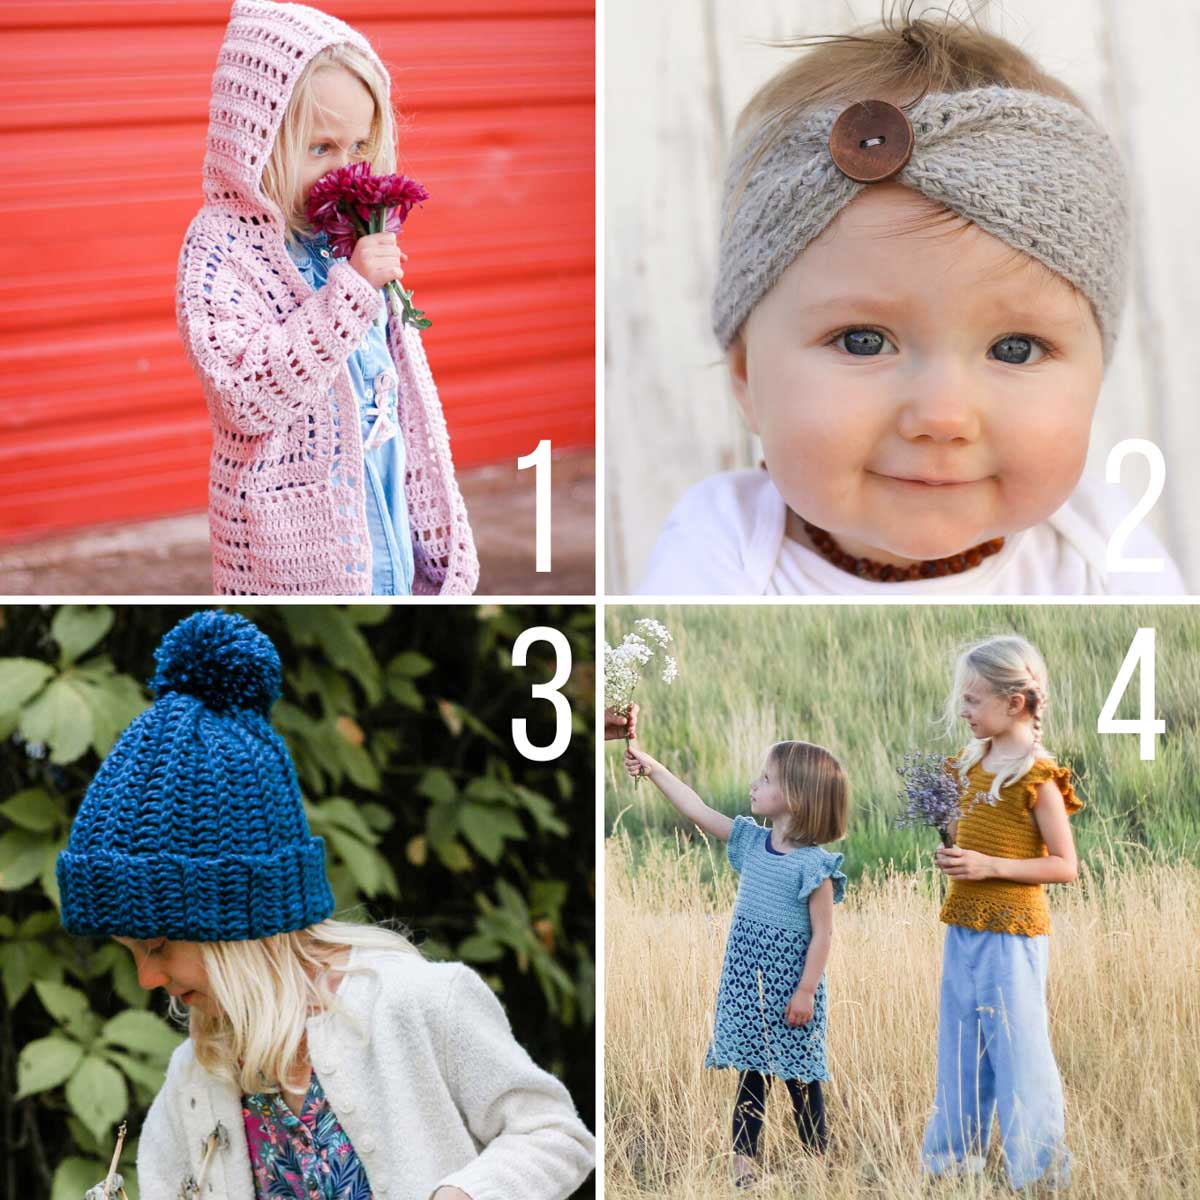 Free crochet patterns for babies and kids including a hexagon cardigan, an easy knit-look headband and gorgeous crochet dresses.